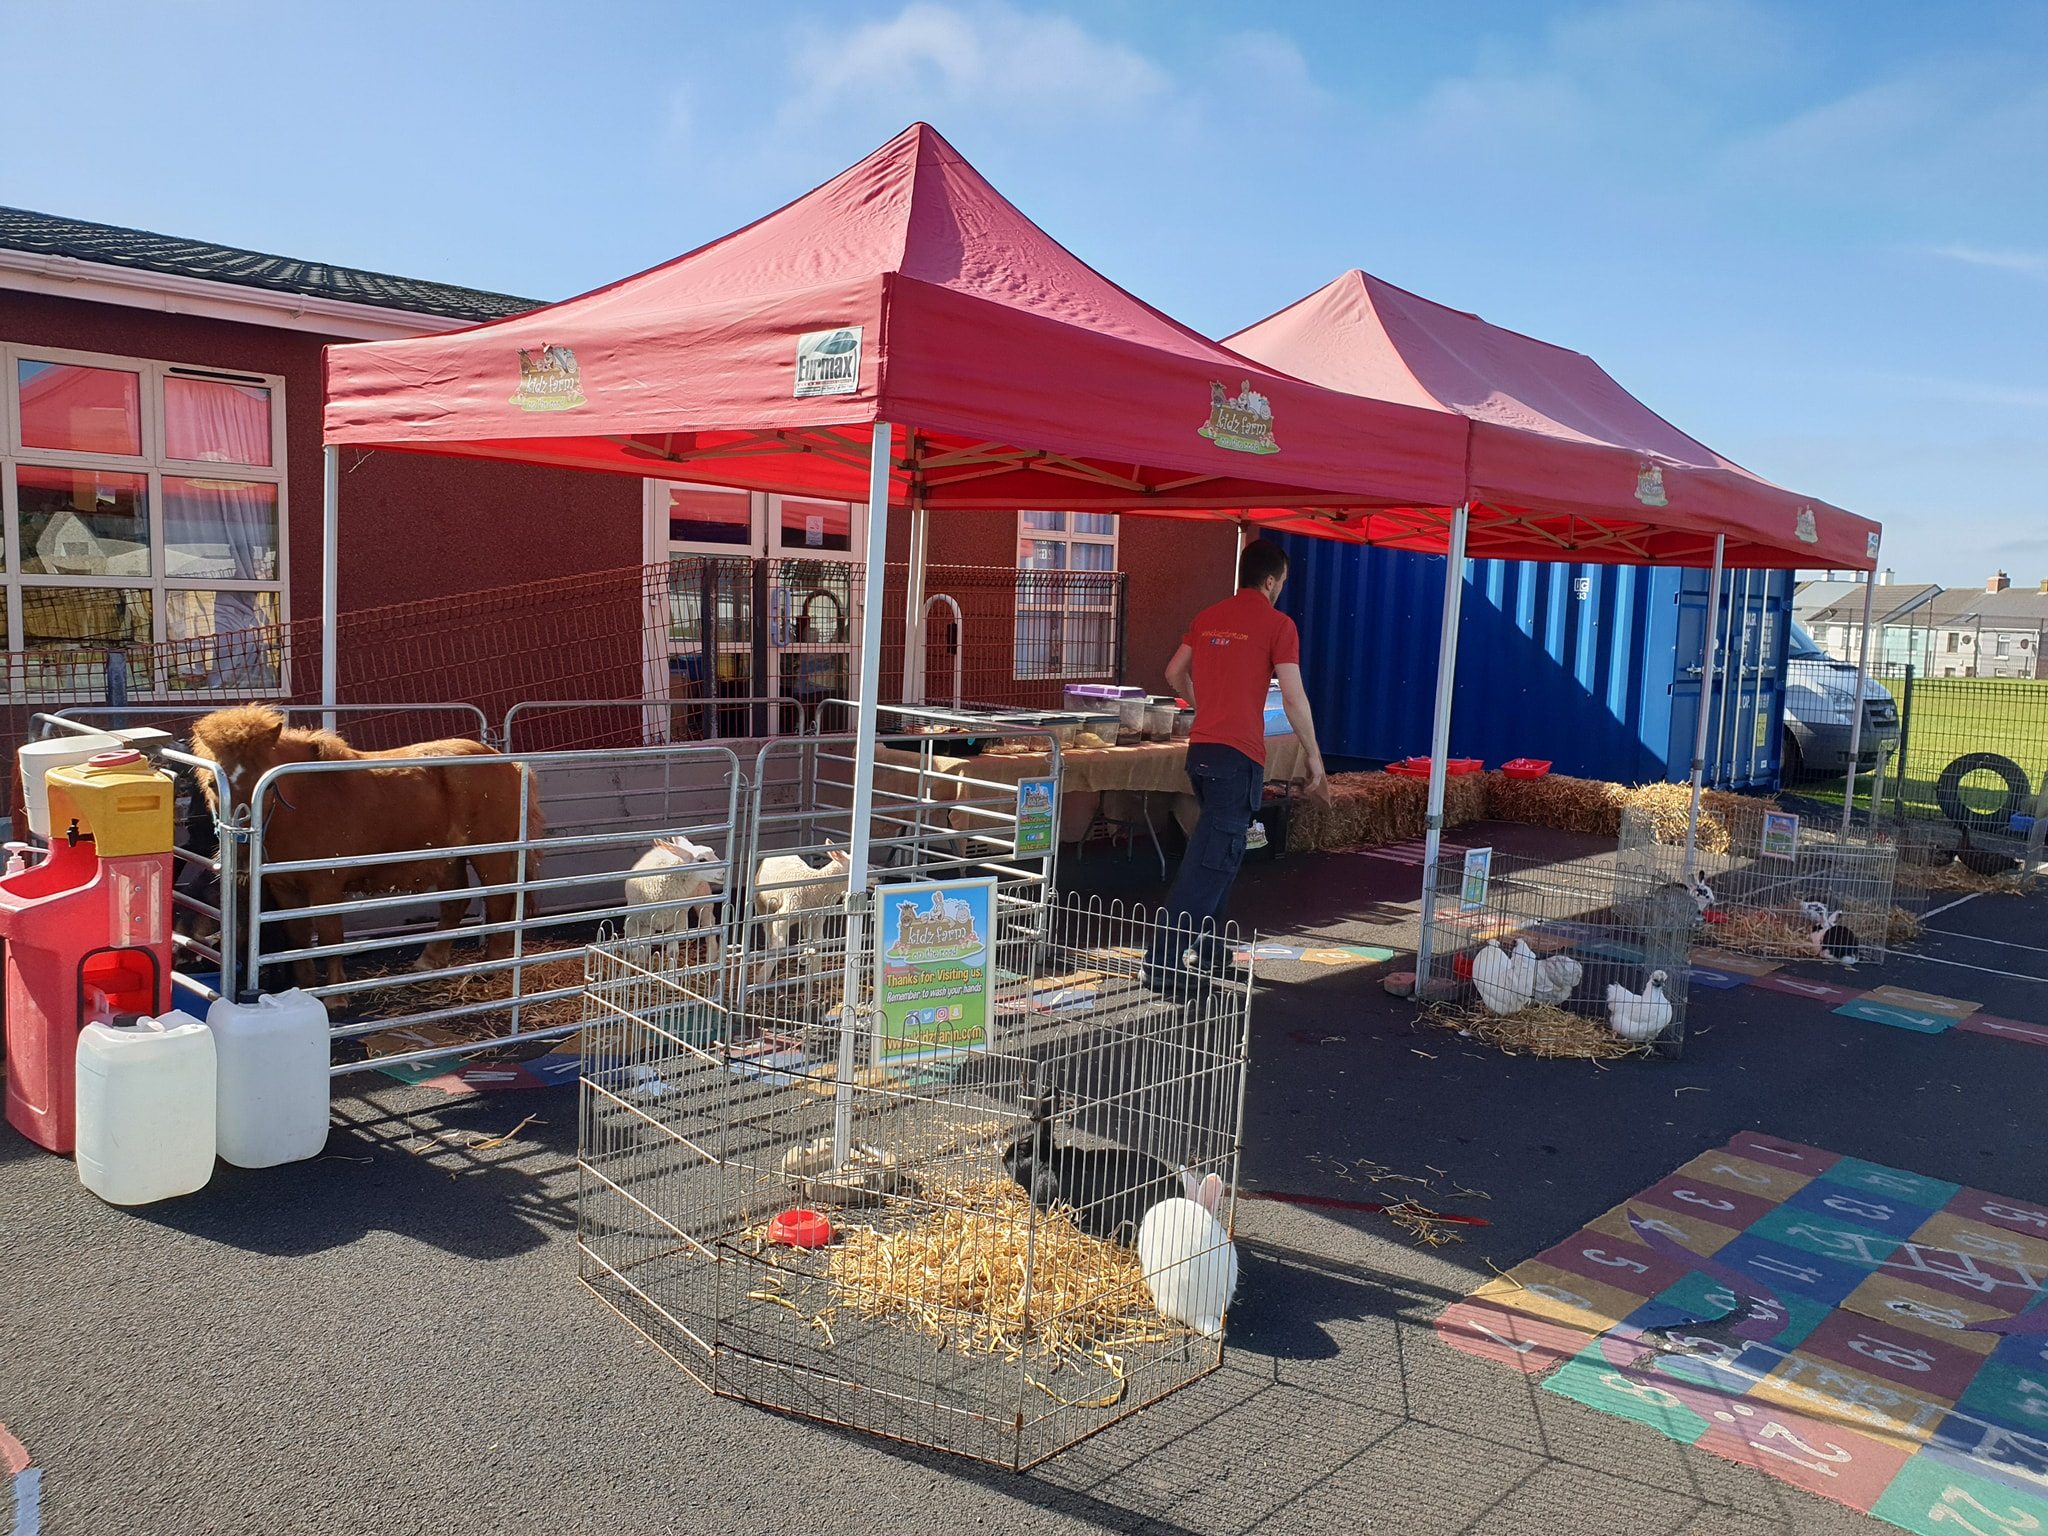 Not often we need to put up the gazebos to keep the sun of us…. but today in Portstewart the sun is shining and it's an exciting day to end a busy Nursery school year.🌞🐑🦎🐎🐢